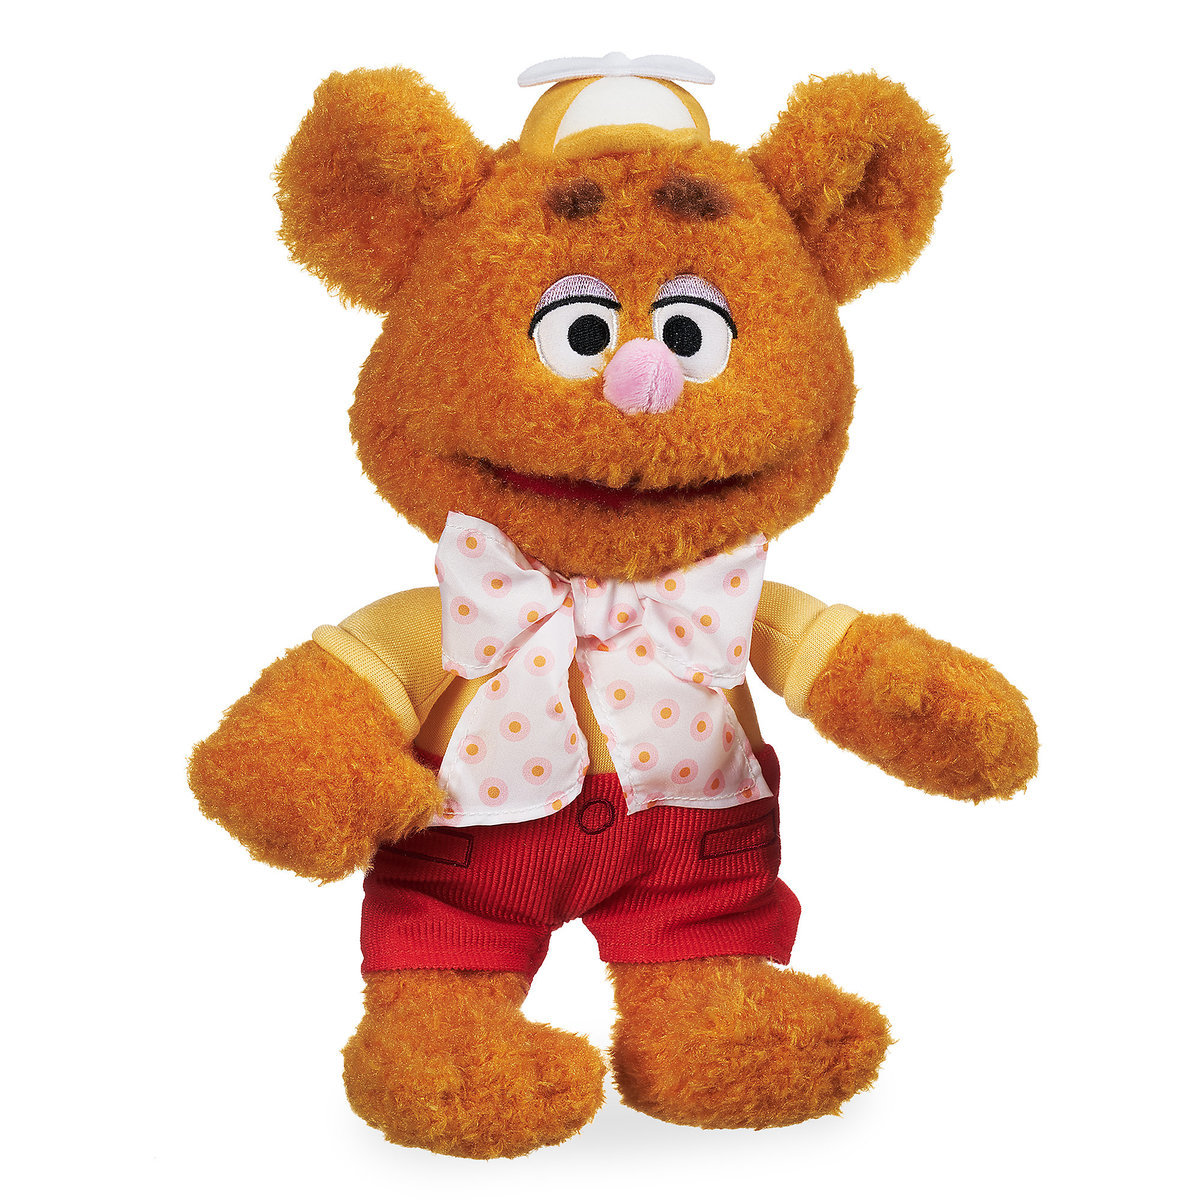 Muppets Animal Free Printable: Muppet Babies Plush Collection Out Now